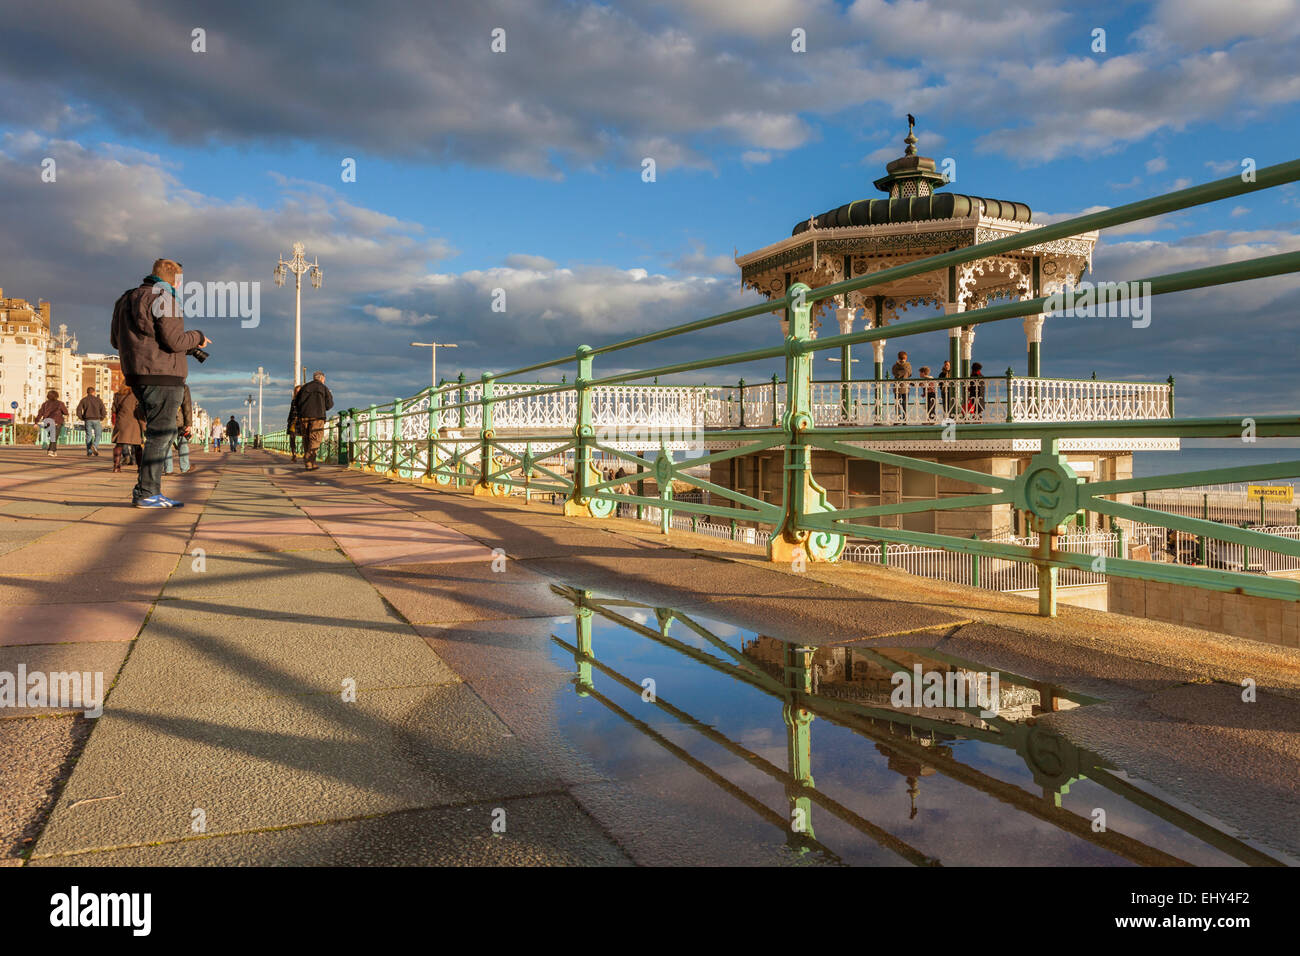 Afternoon at the Bandstand on Brighton seafront, East Sussex, England. - Stock Image